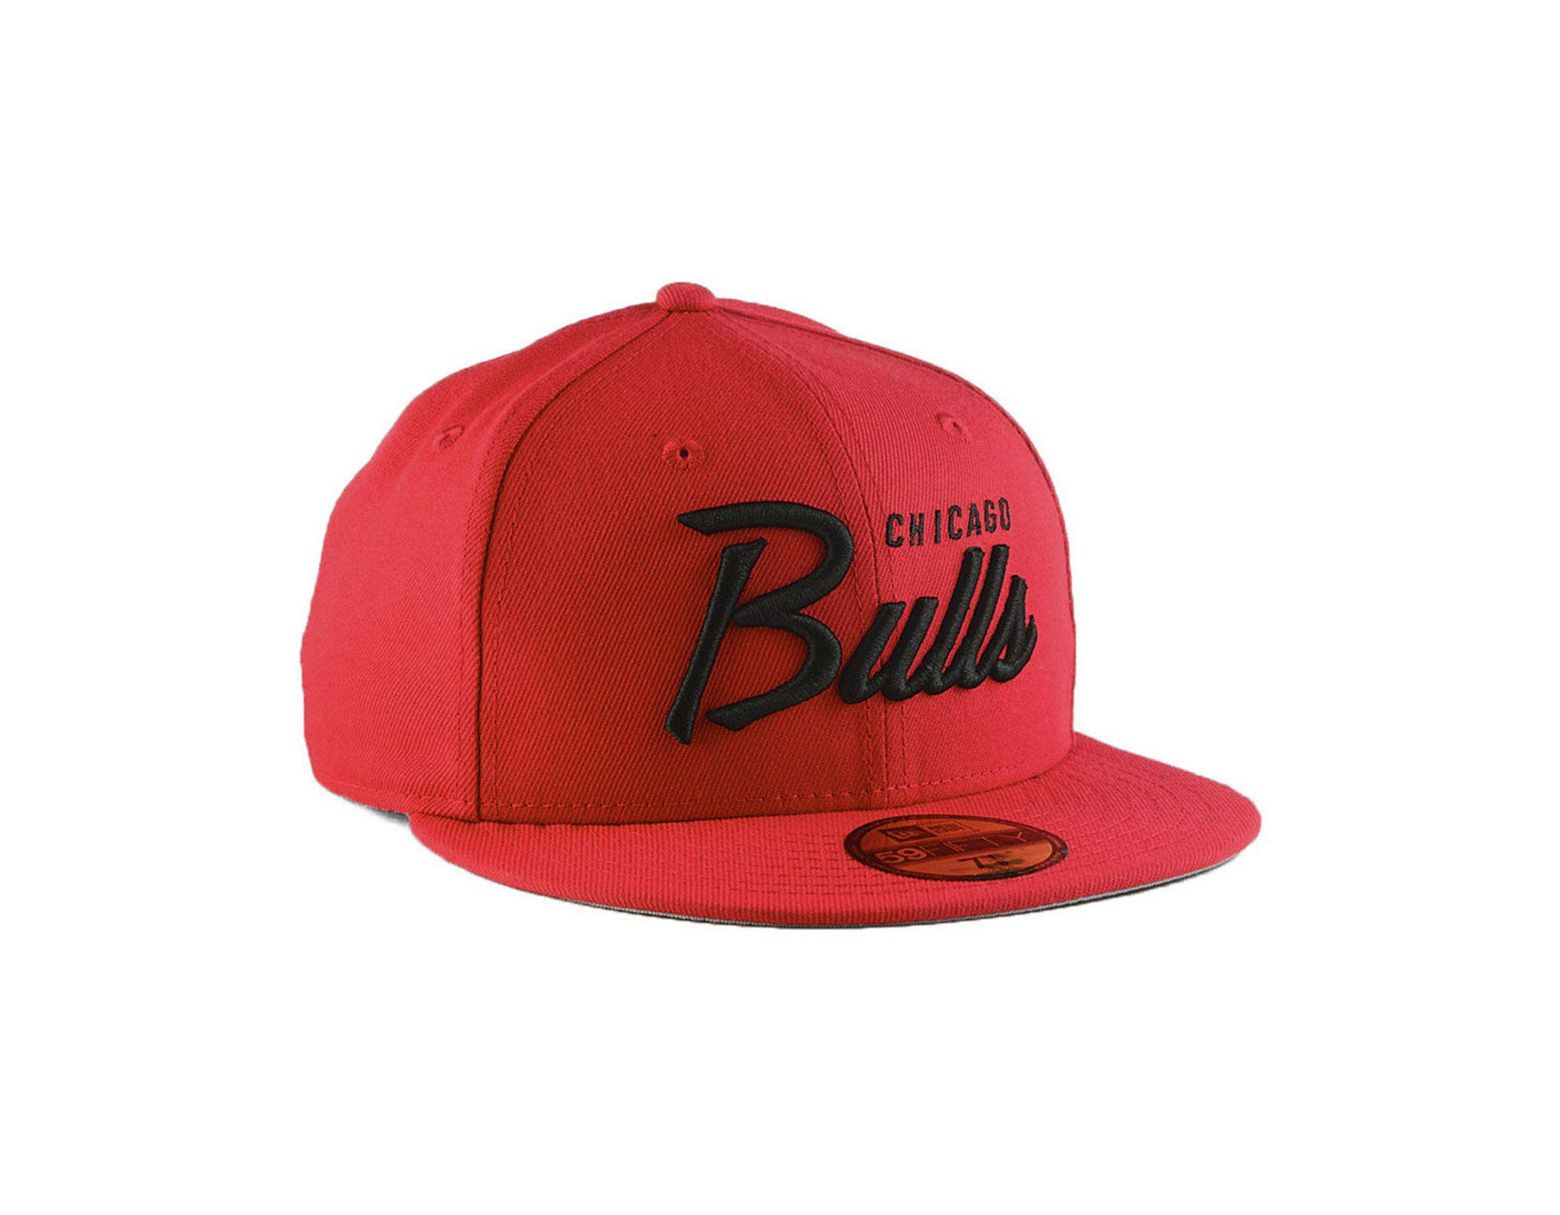 premium selection c53e9 d96c4 KTZ Chicago Bulls Classic Script 59fifty Fitted Cap in Red for Men - Lyst